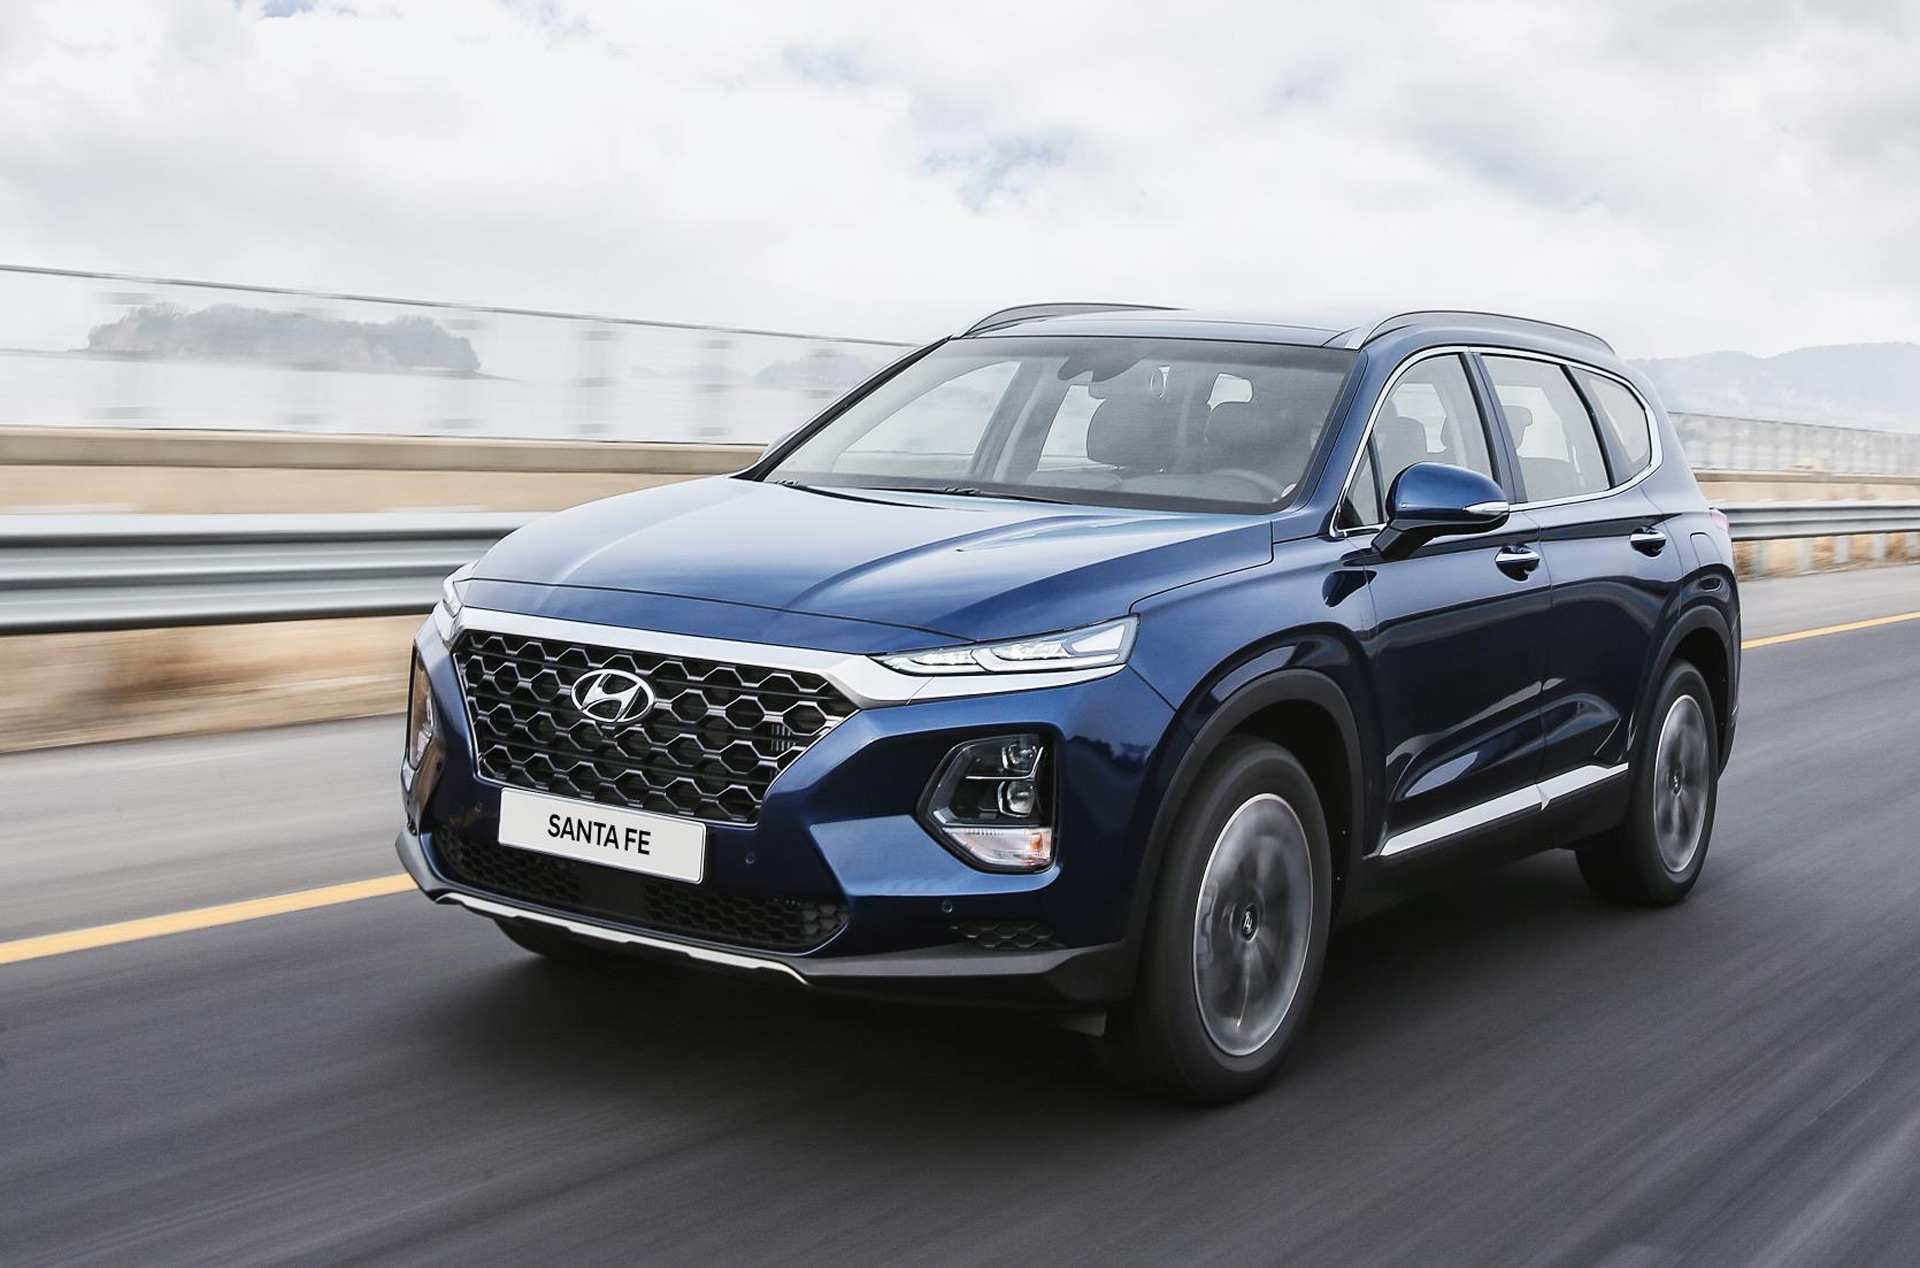 75 Concept of 2019 Hyundai Diesel Configurations with 2019 Hyundai Diesel